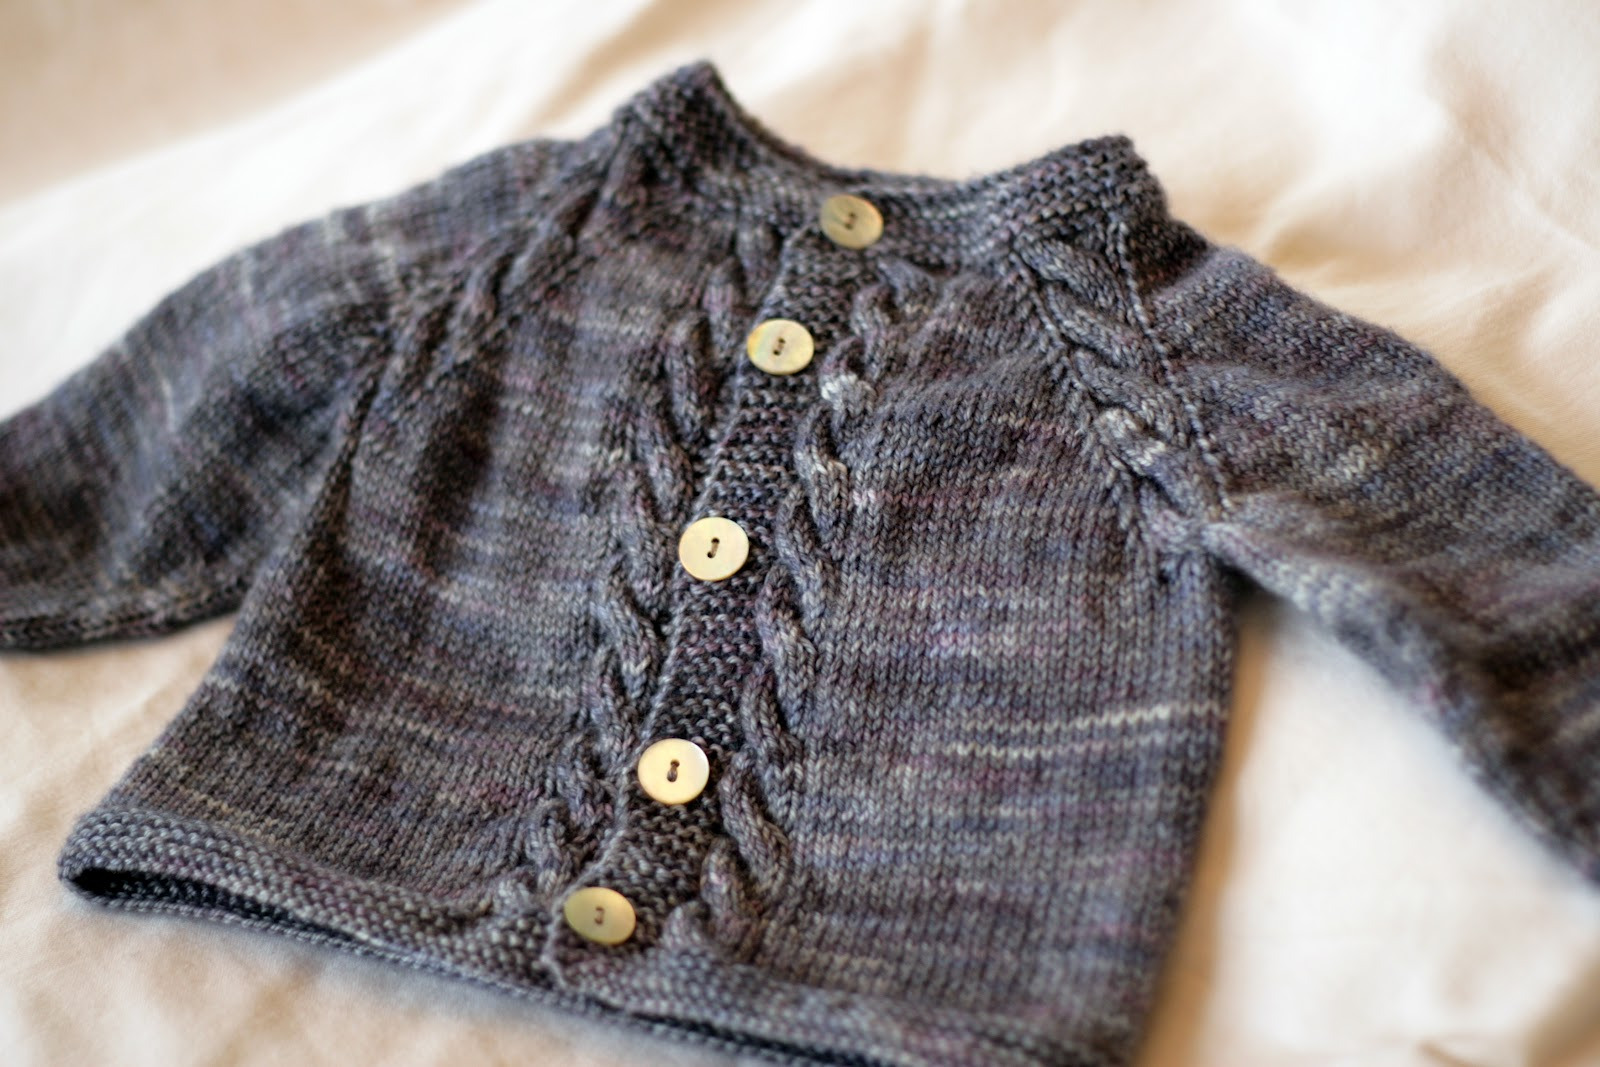 Knitting Pattern Baby Cardigan Newborn : KATE PRESTON HANDKNITS /BLOG: The Sunnyside Baby Cardigan